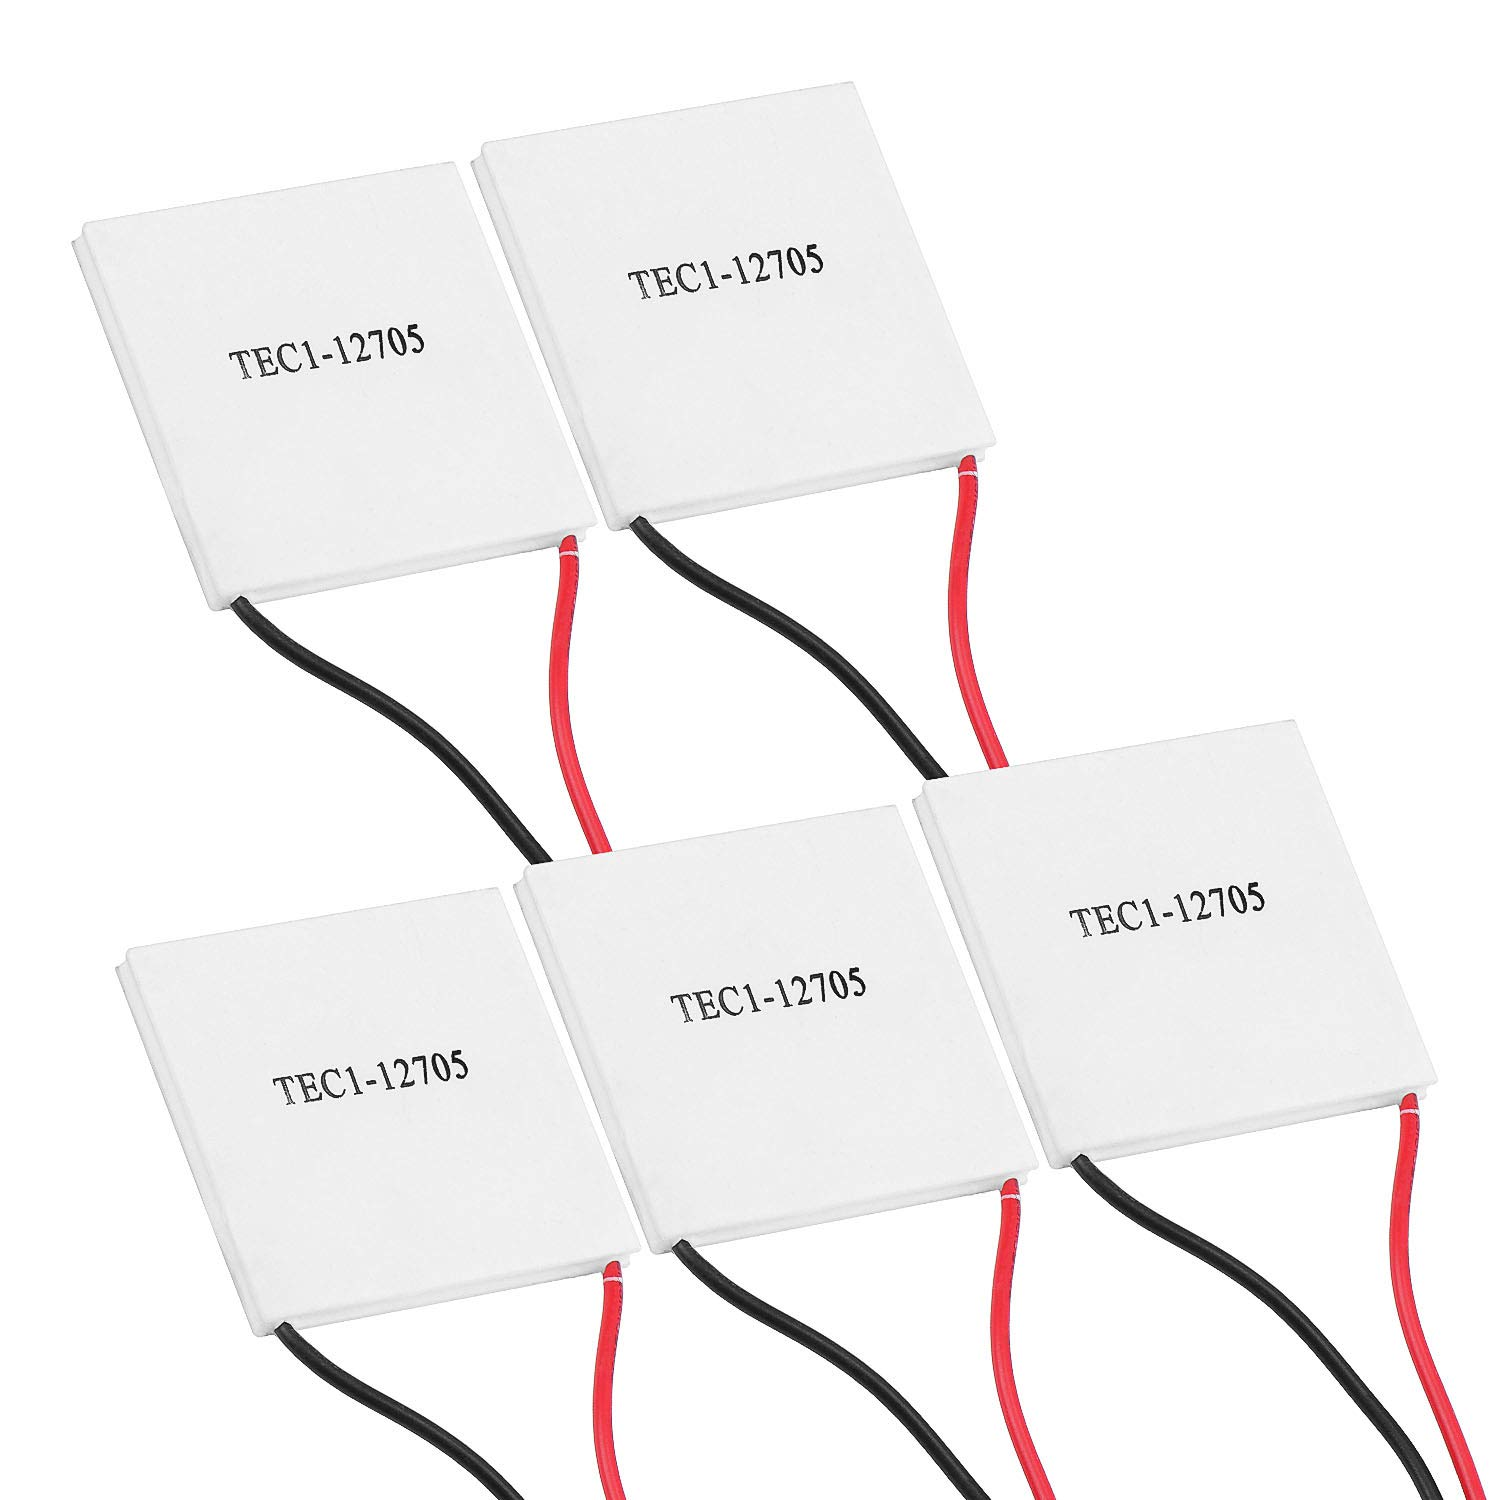 ESUMIC 5PCS TEC1-12705 Heatsink Thermoelectric Cooler Cooling Peltier Plate Module 12V 45W